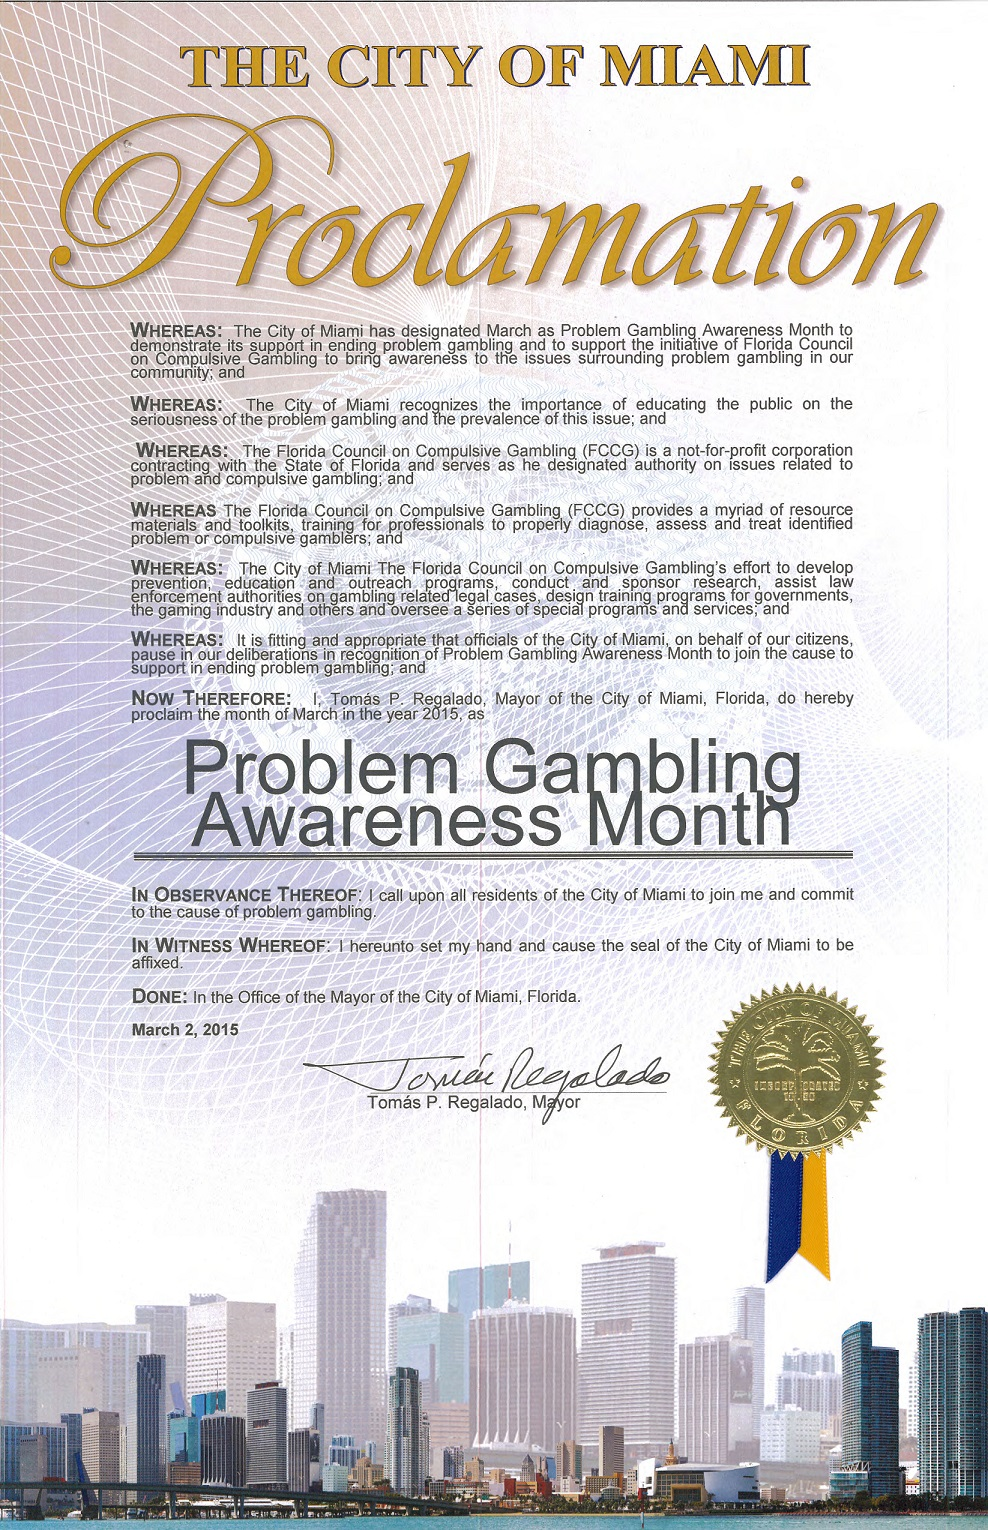 City of Miami Proclamtion for Problem Gambling Awareness Month